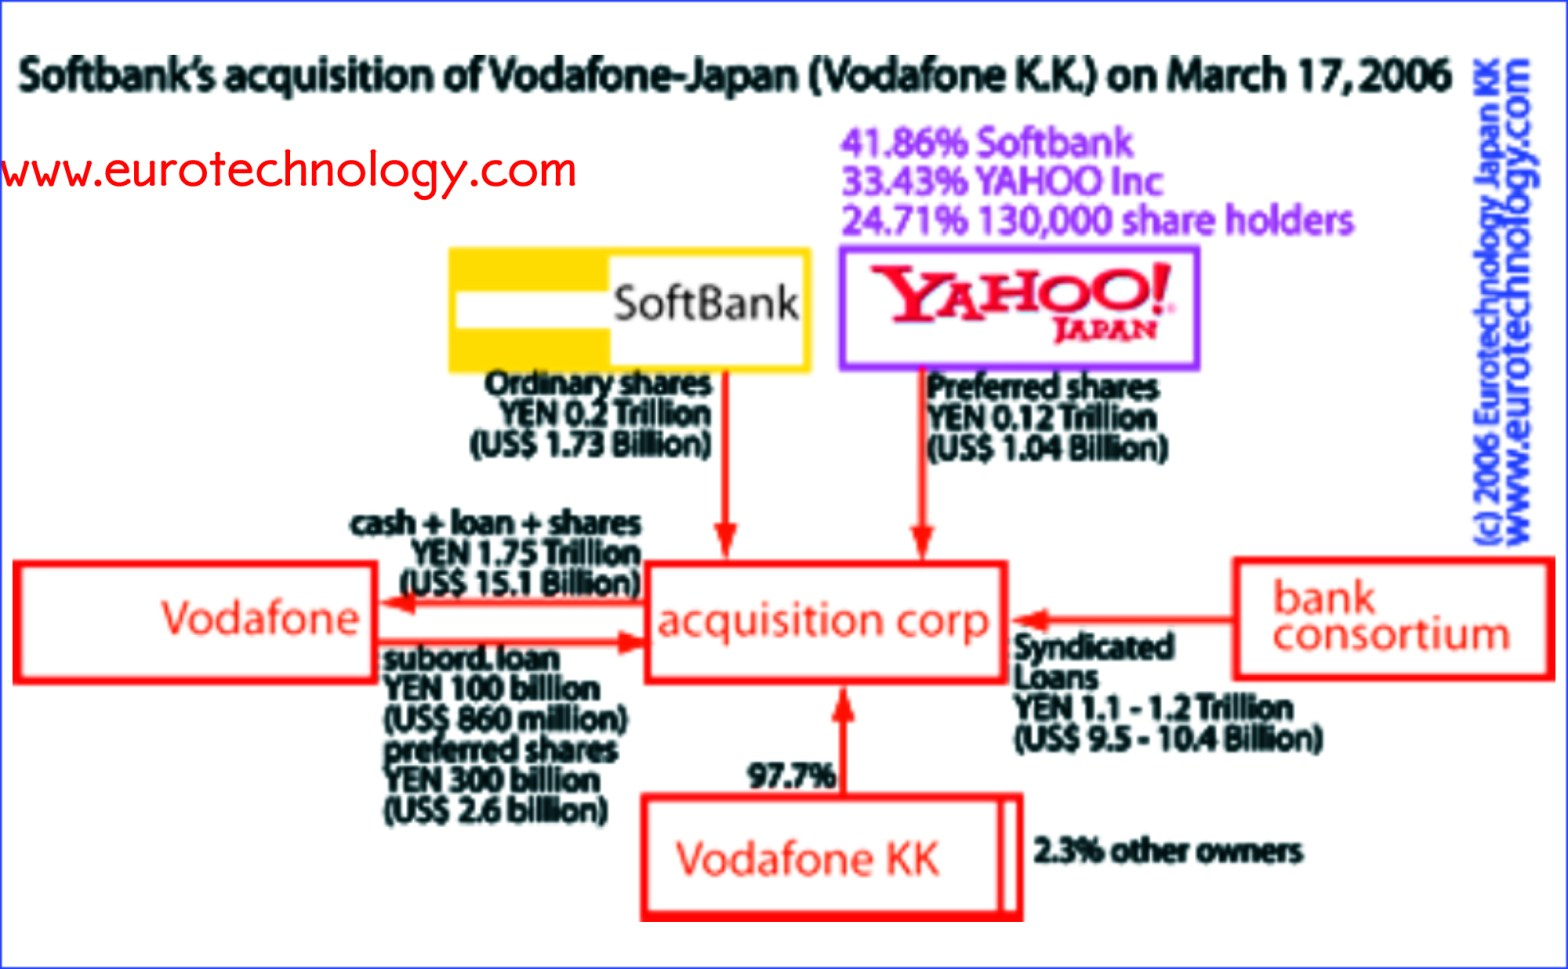 Softbank acquires Vodafone Japan with co-investment from Yahoo KK